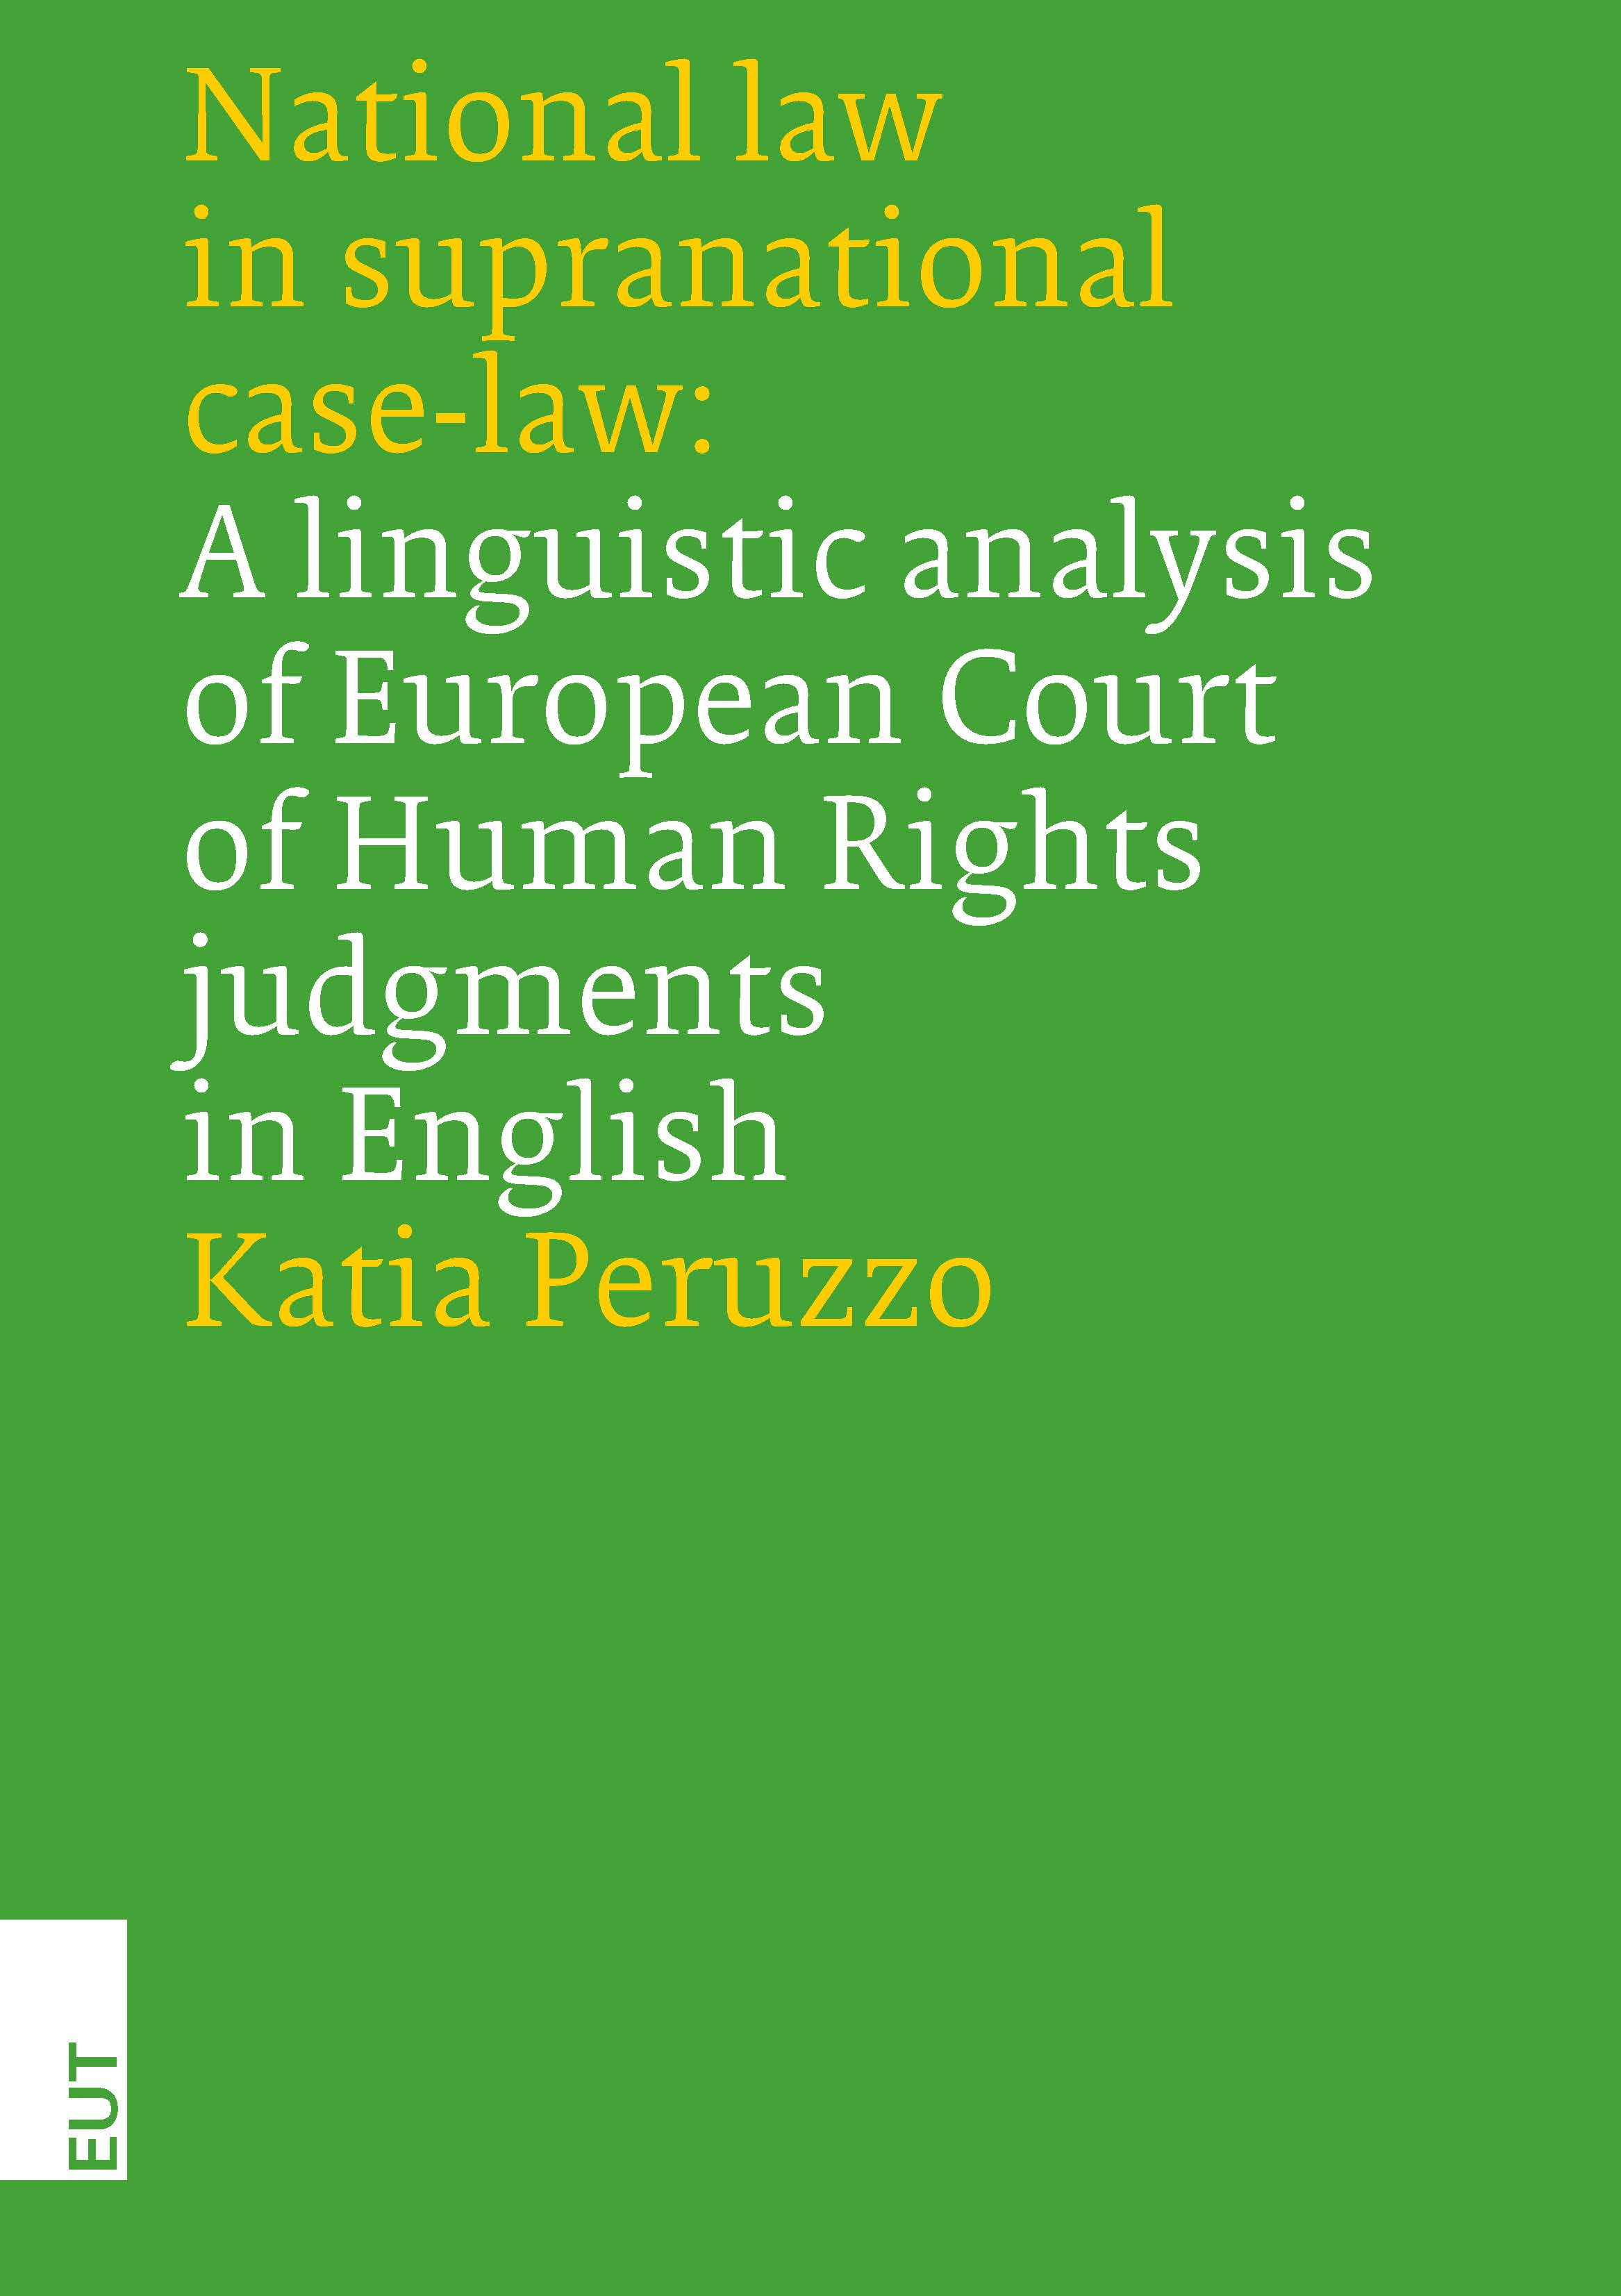 National law in supranational case-law: A linguistic analysis of European Court of Human Rights judgments in English